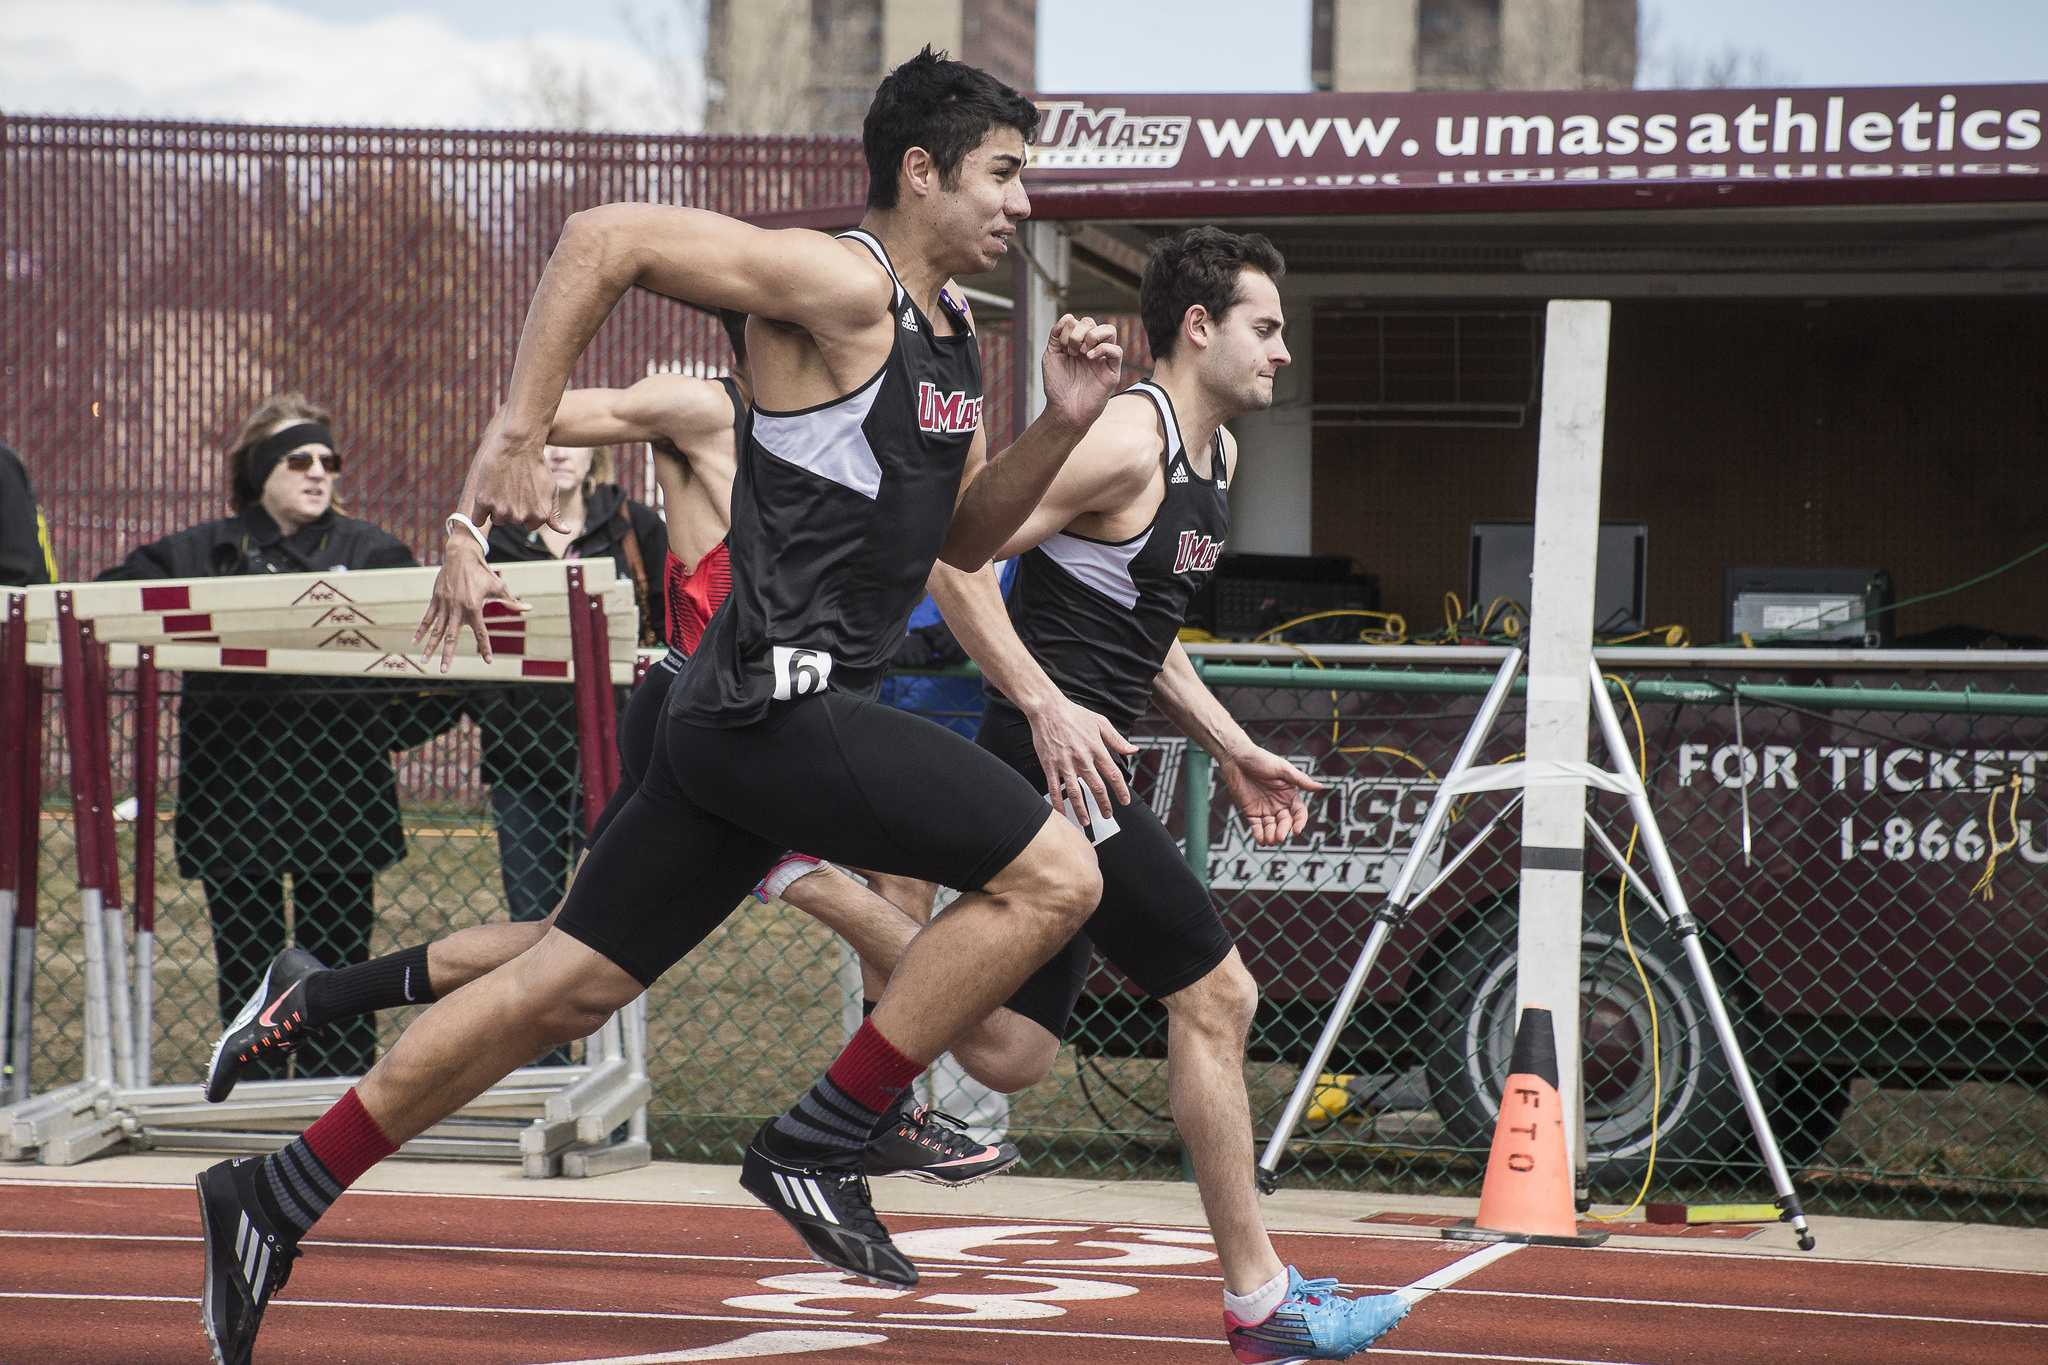 UMass athletes prepare for their first decathlon and heptathlon of the outdoor season